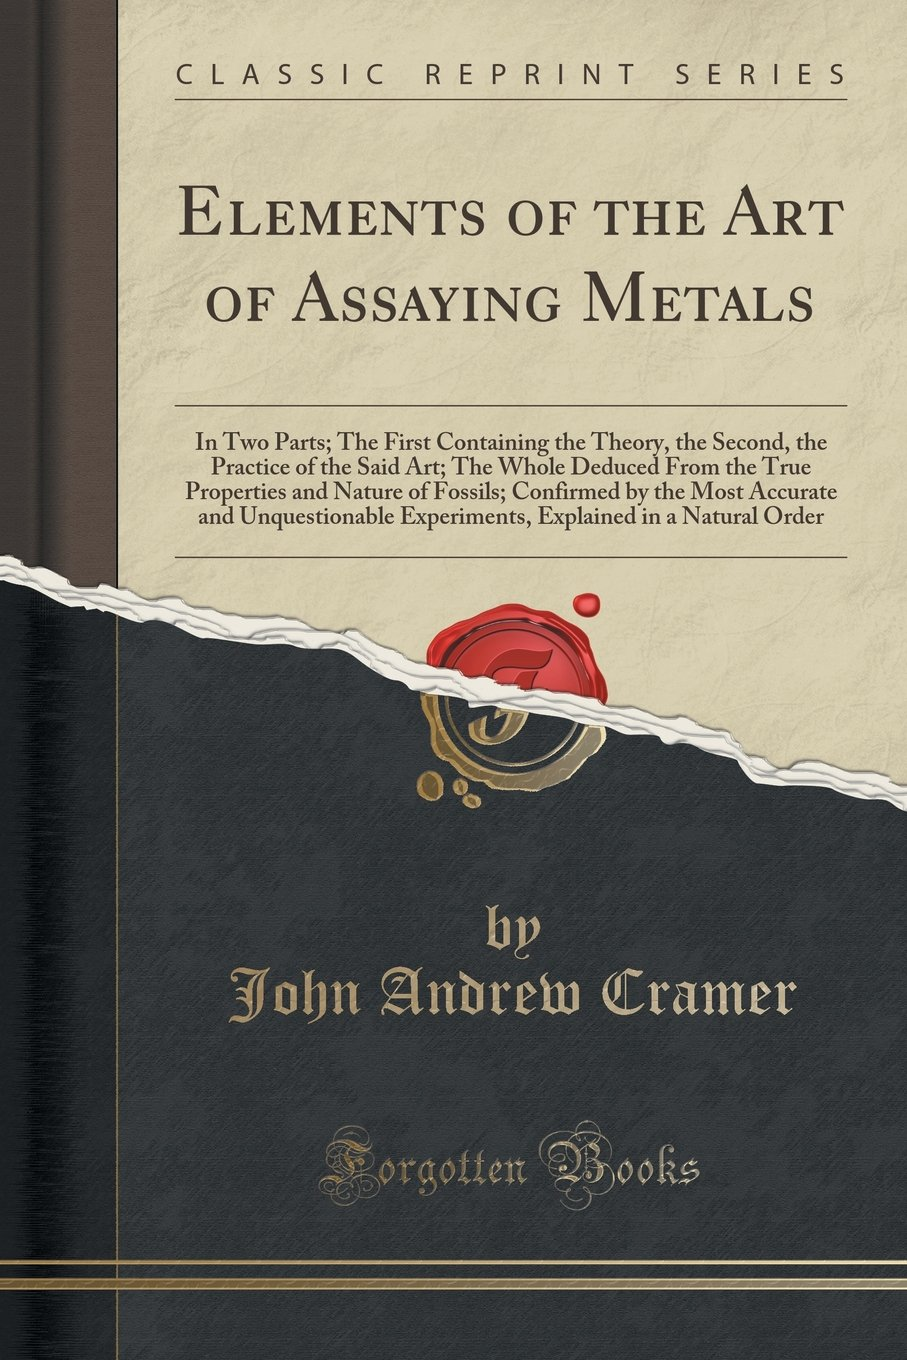 Elements of the Art of Assaying Metals: In Two Parts; The First Containing the Theory, the Second, the Practice of the Said Art; The Whole Deduced ... Most Accurate and Unquestionable Experiment